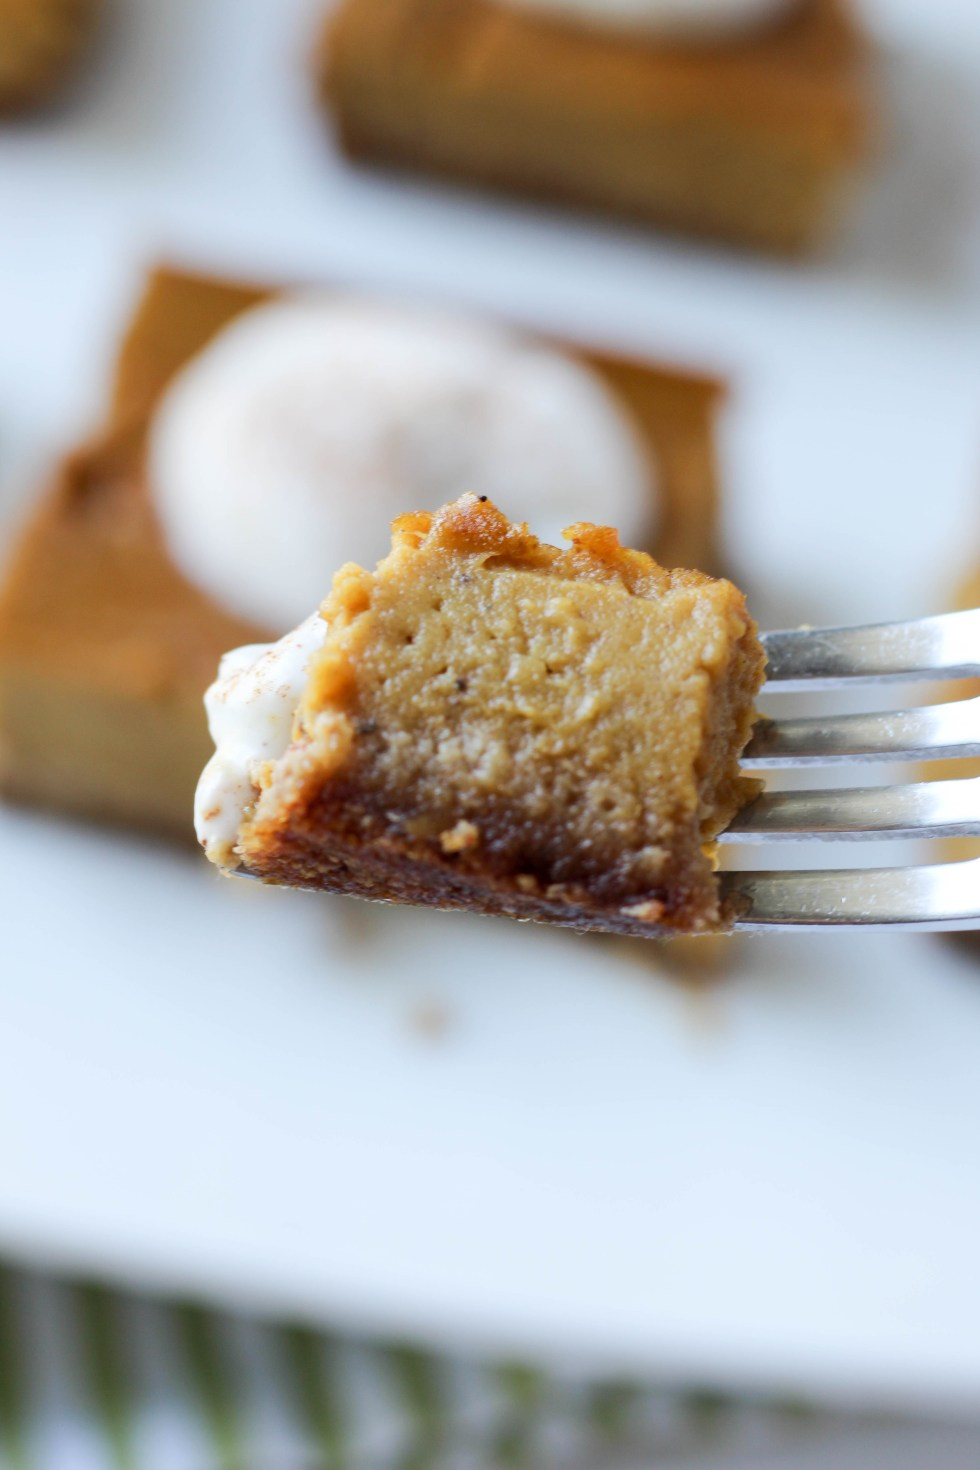 Pumpkin pie glow bars with a diary free coconut crust and adaptogenic herbs // POP KITCHEN